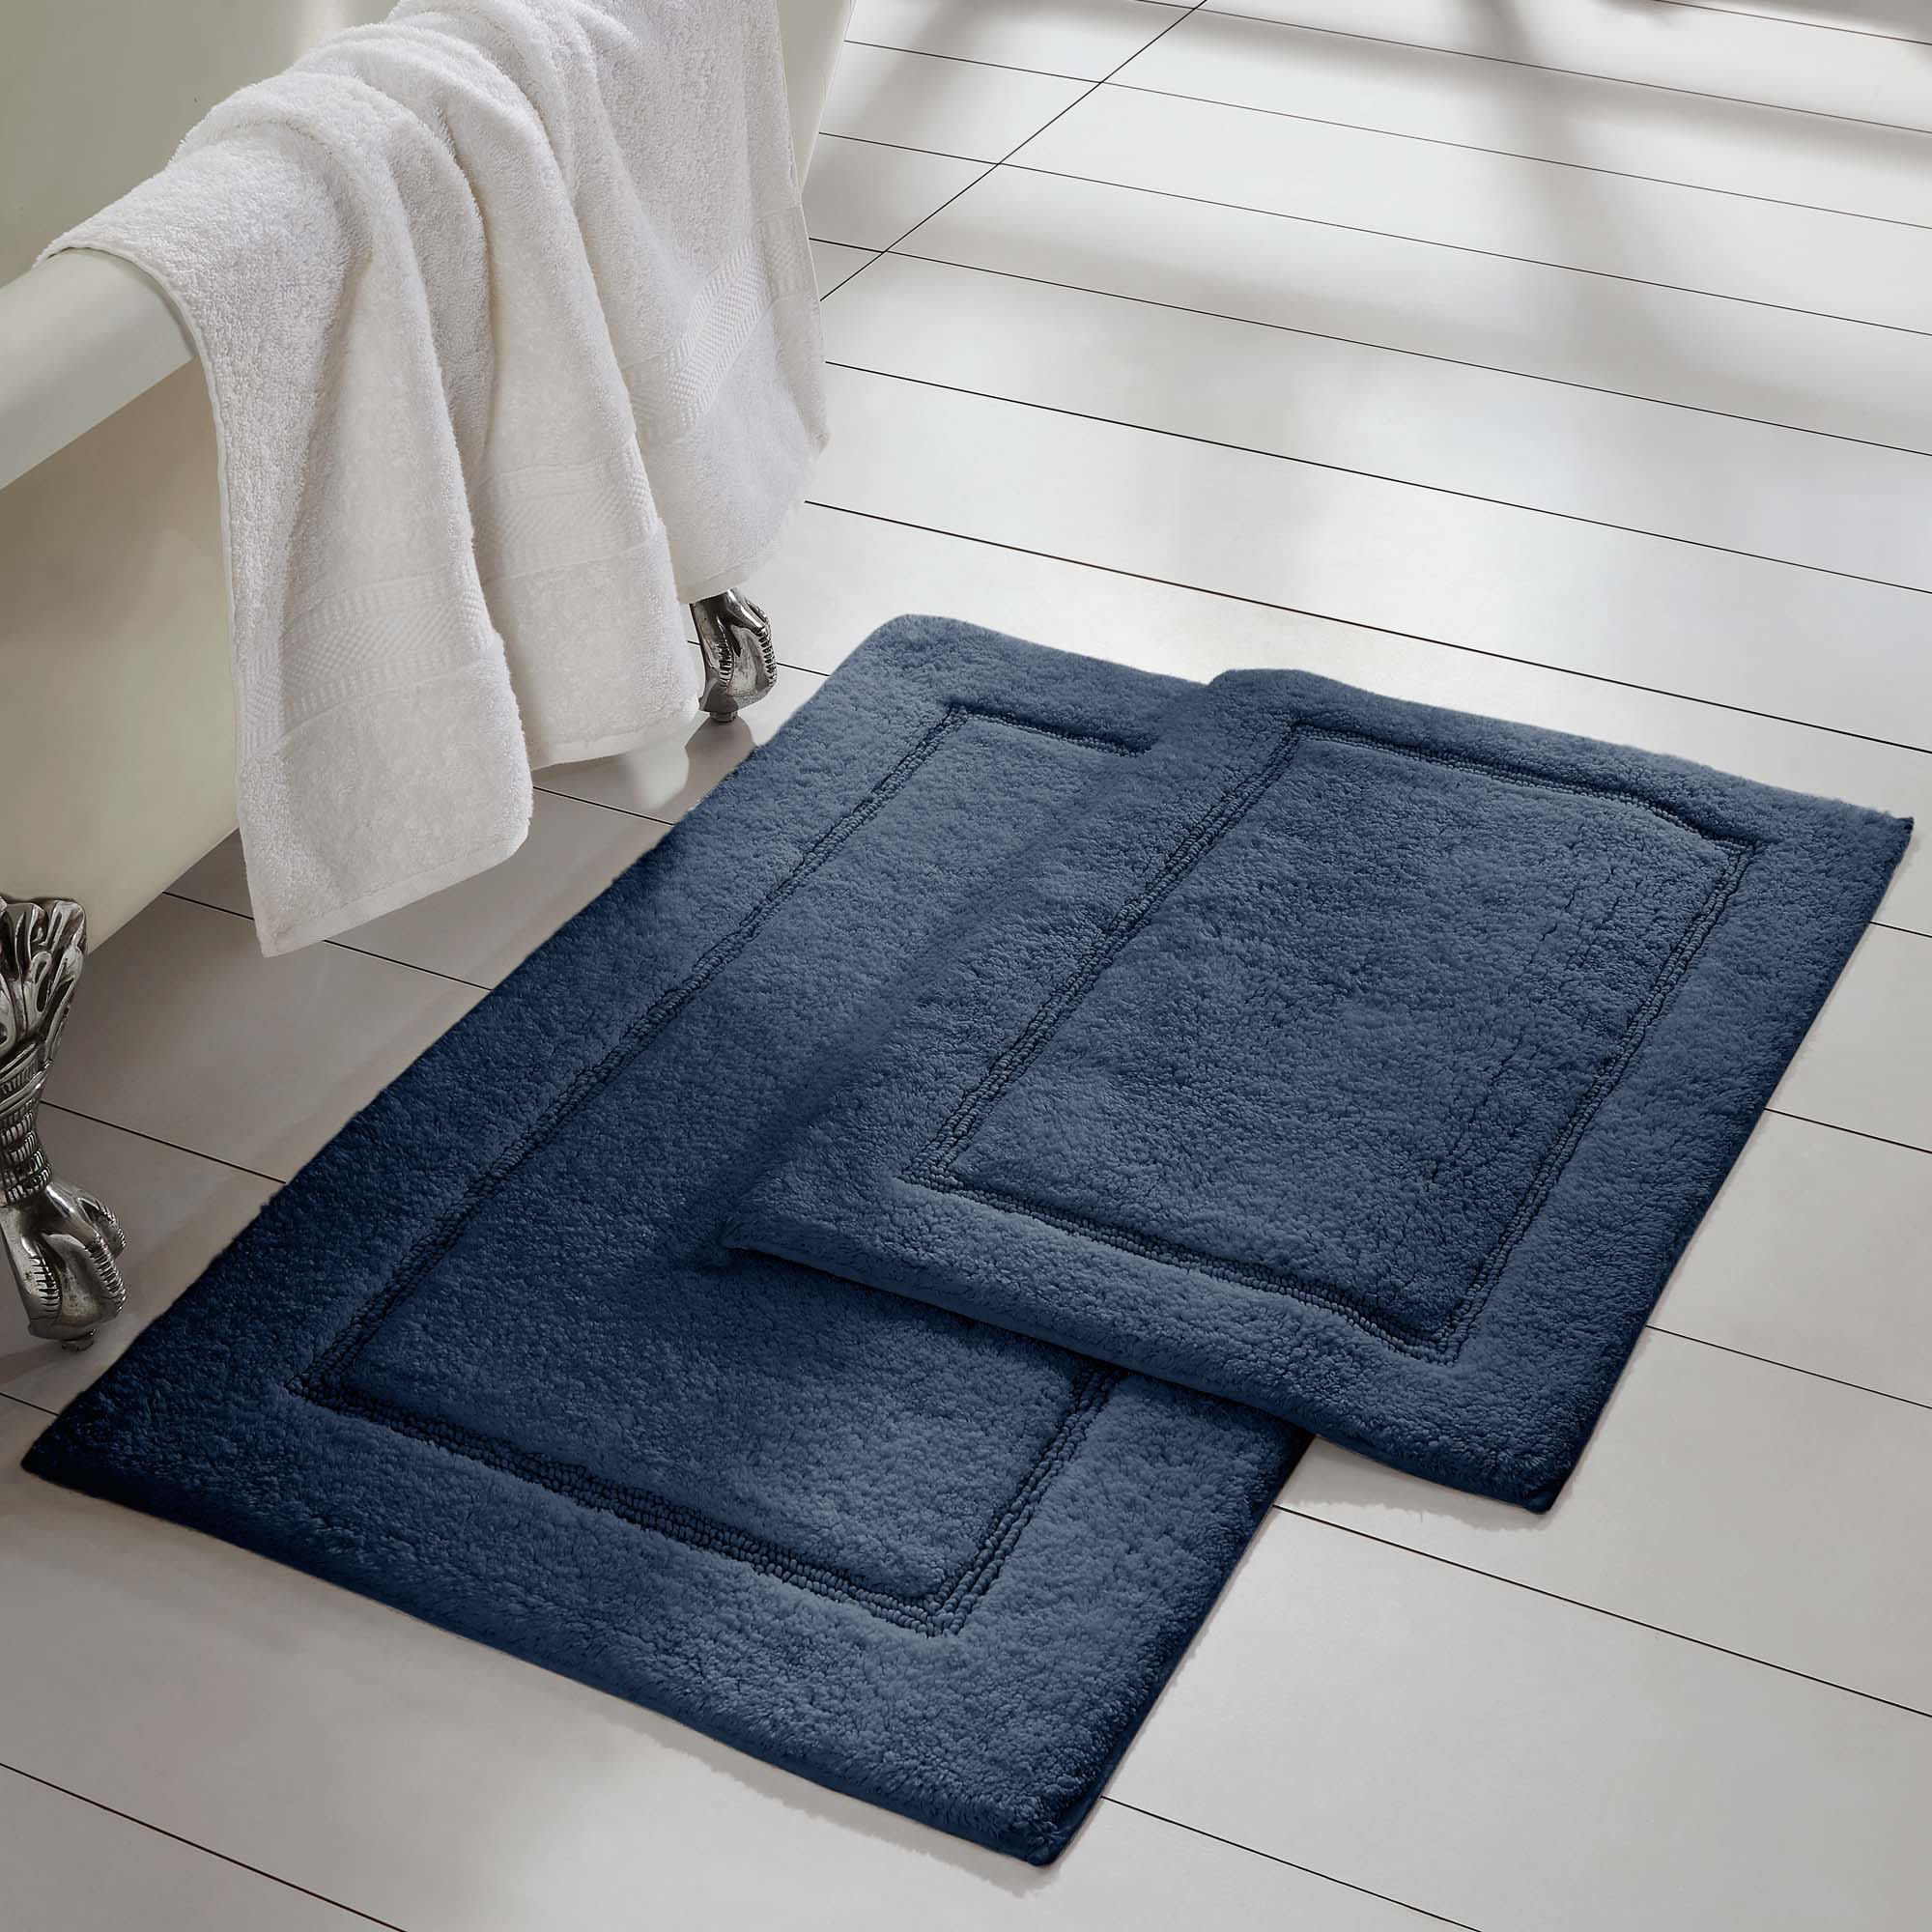 BISCUIT 2x3 ft Absorbent Cotton Bath Rug Non Skid Bathroom Bed Shower Mat 2 PACK